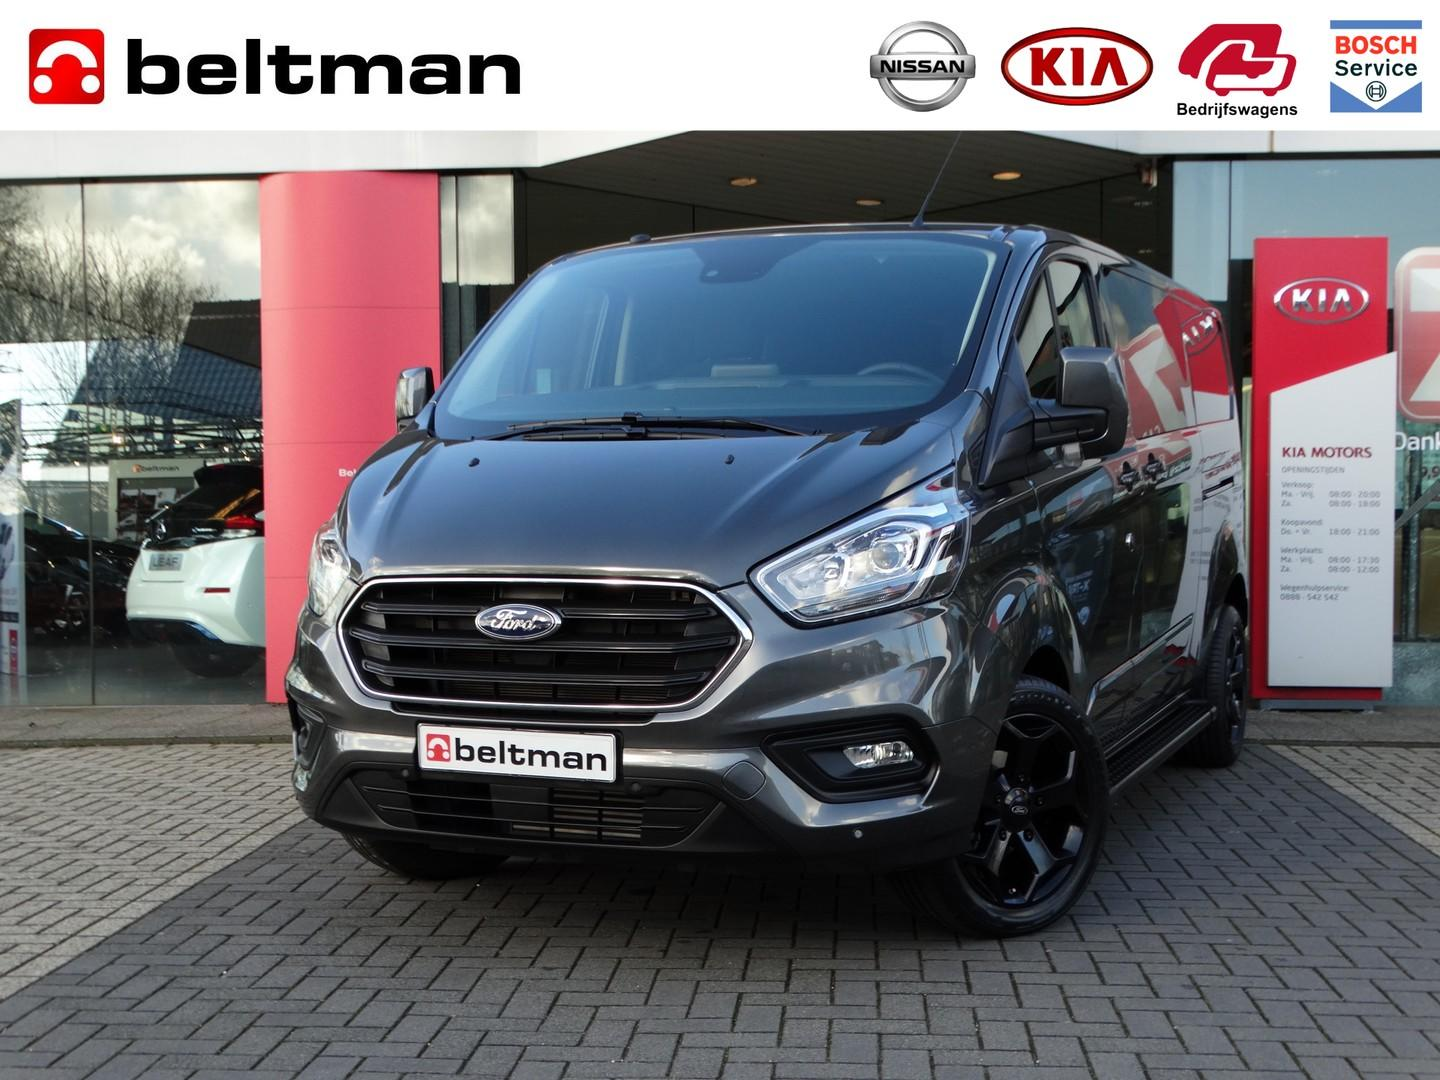 Ford Transit custom 300 2.0 tdci l2h1 limited dc automaat uit voorraad!!!